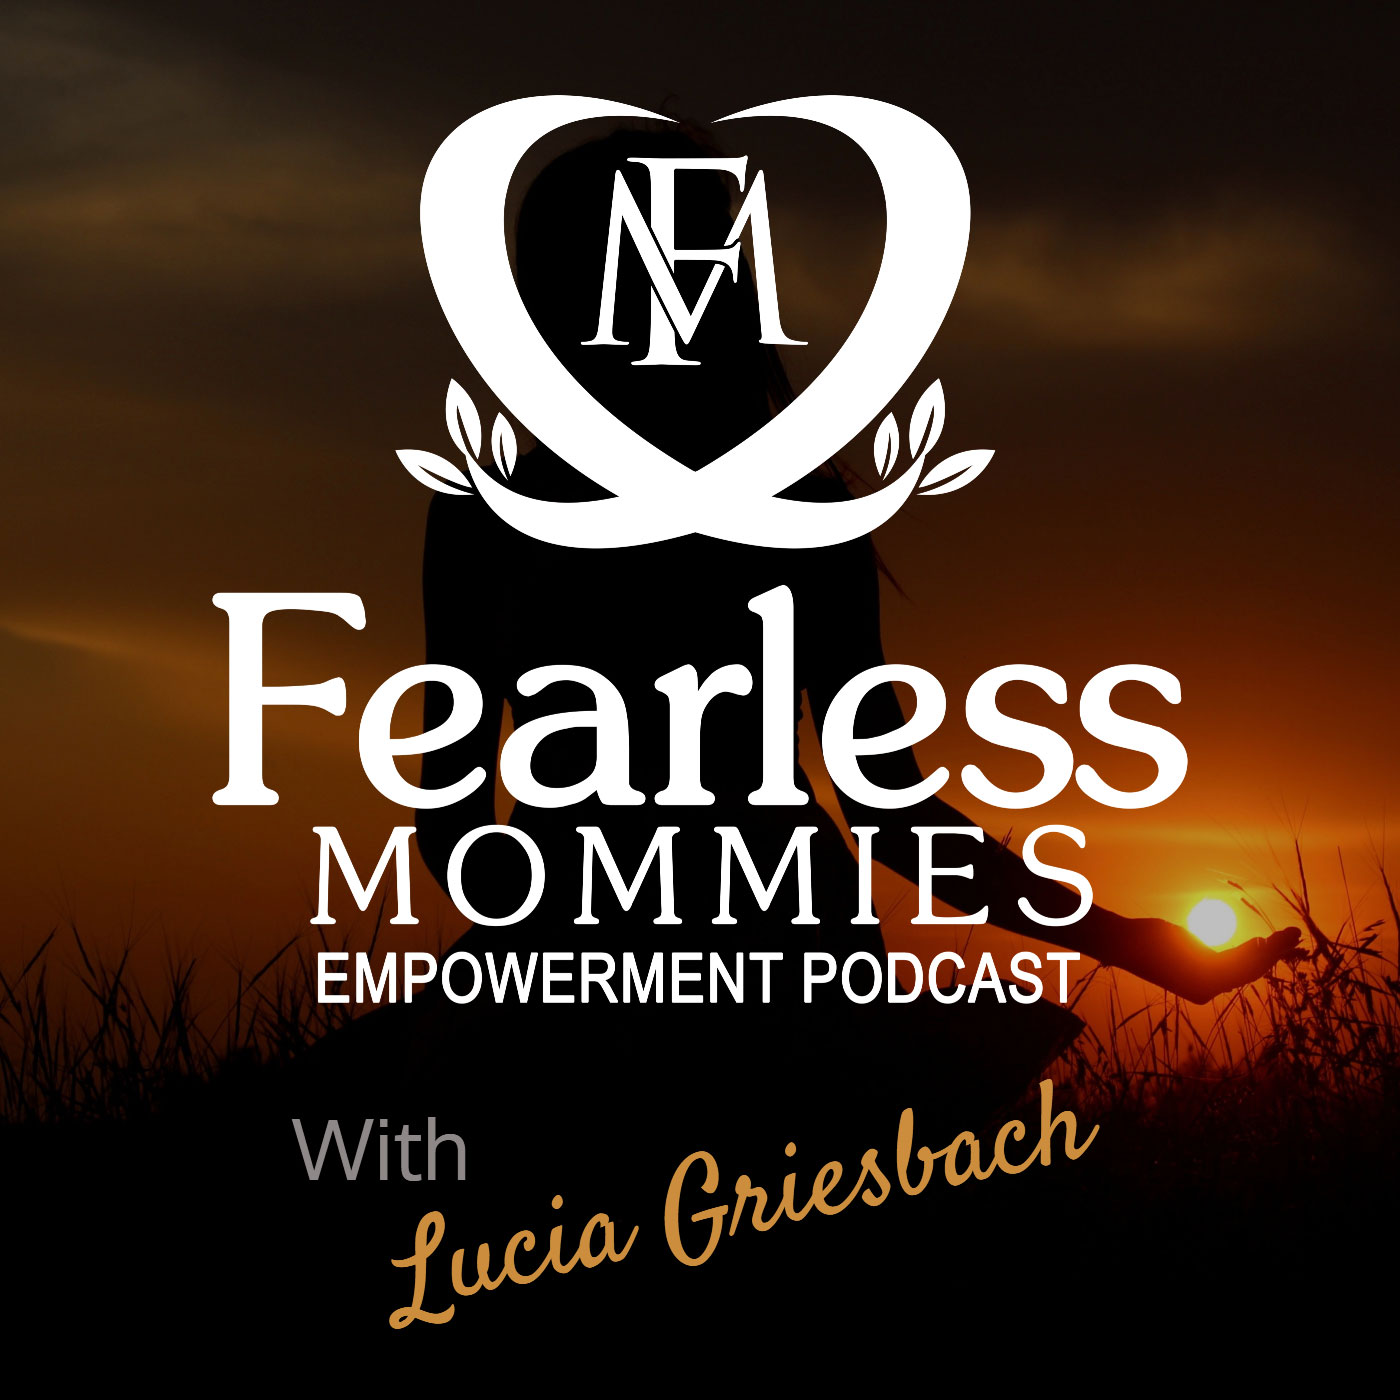 The FearlessMommies Empowerment Podcast